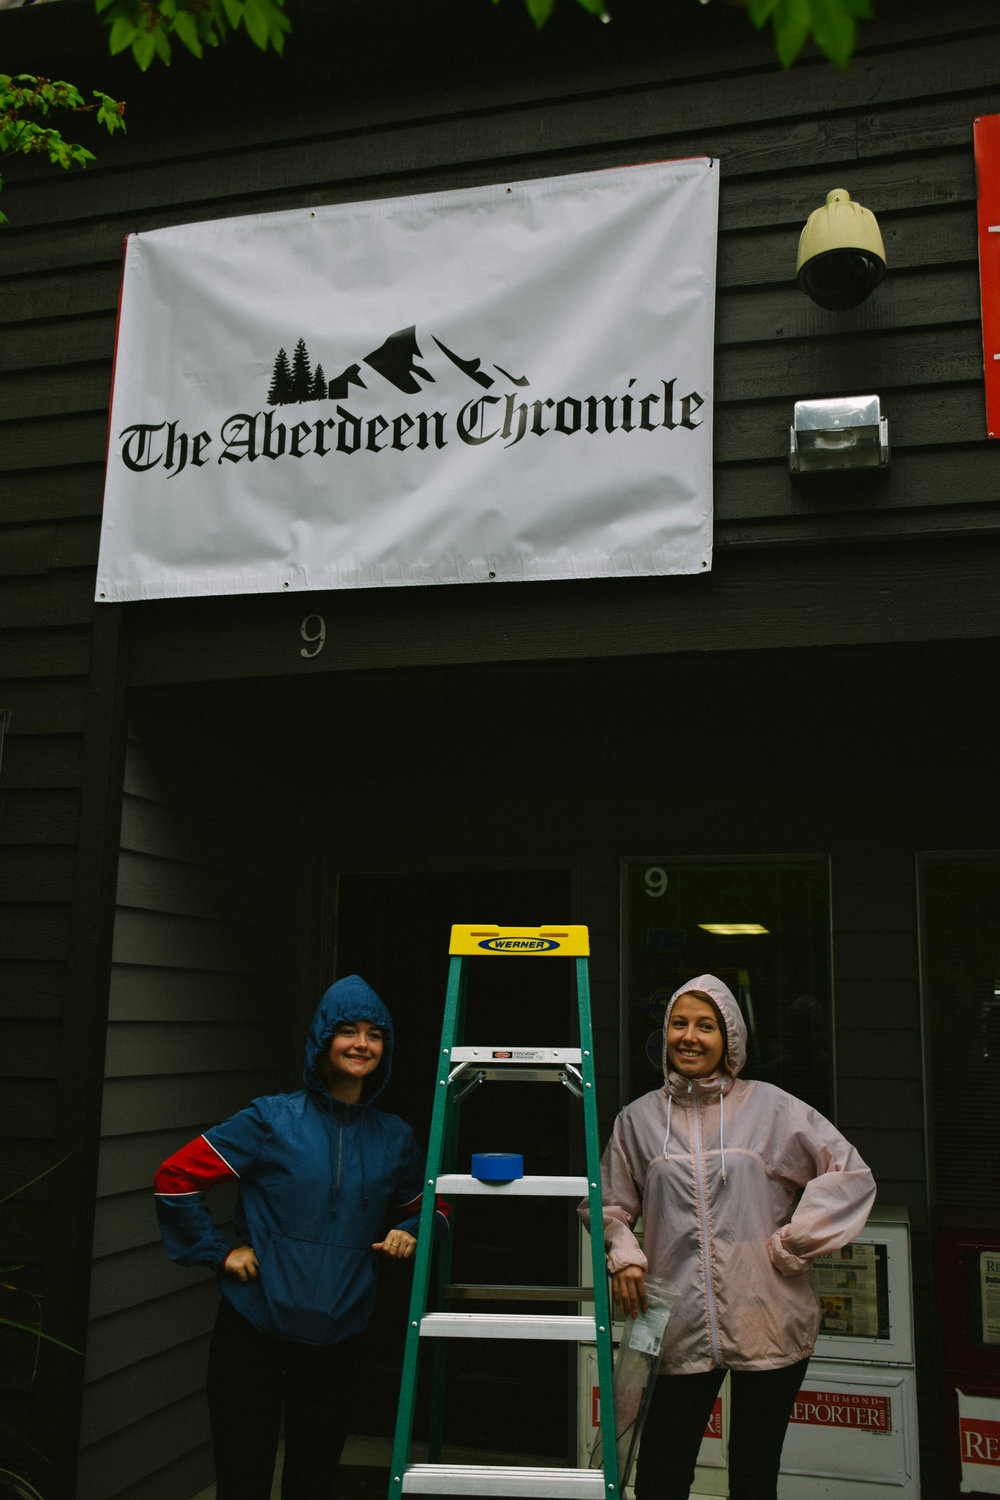 Producer, Sophia Hoefle, stands with Production Designer, Kate Dudek under the sign she designed for the local newspaper in the film.